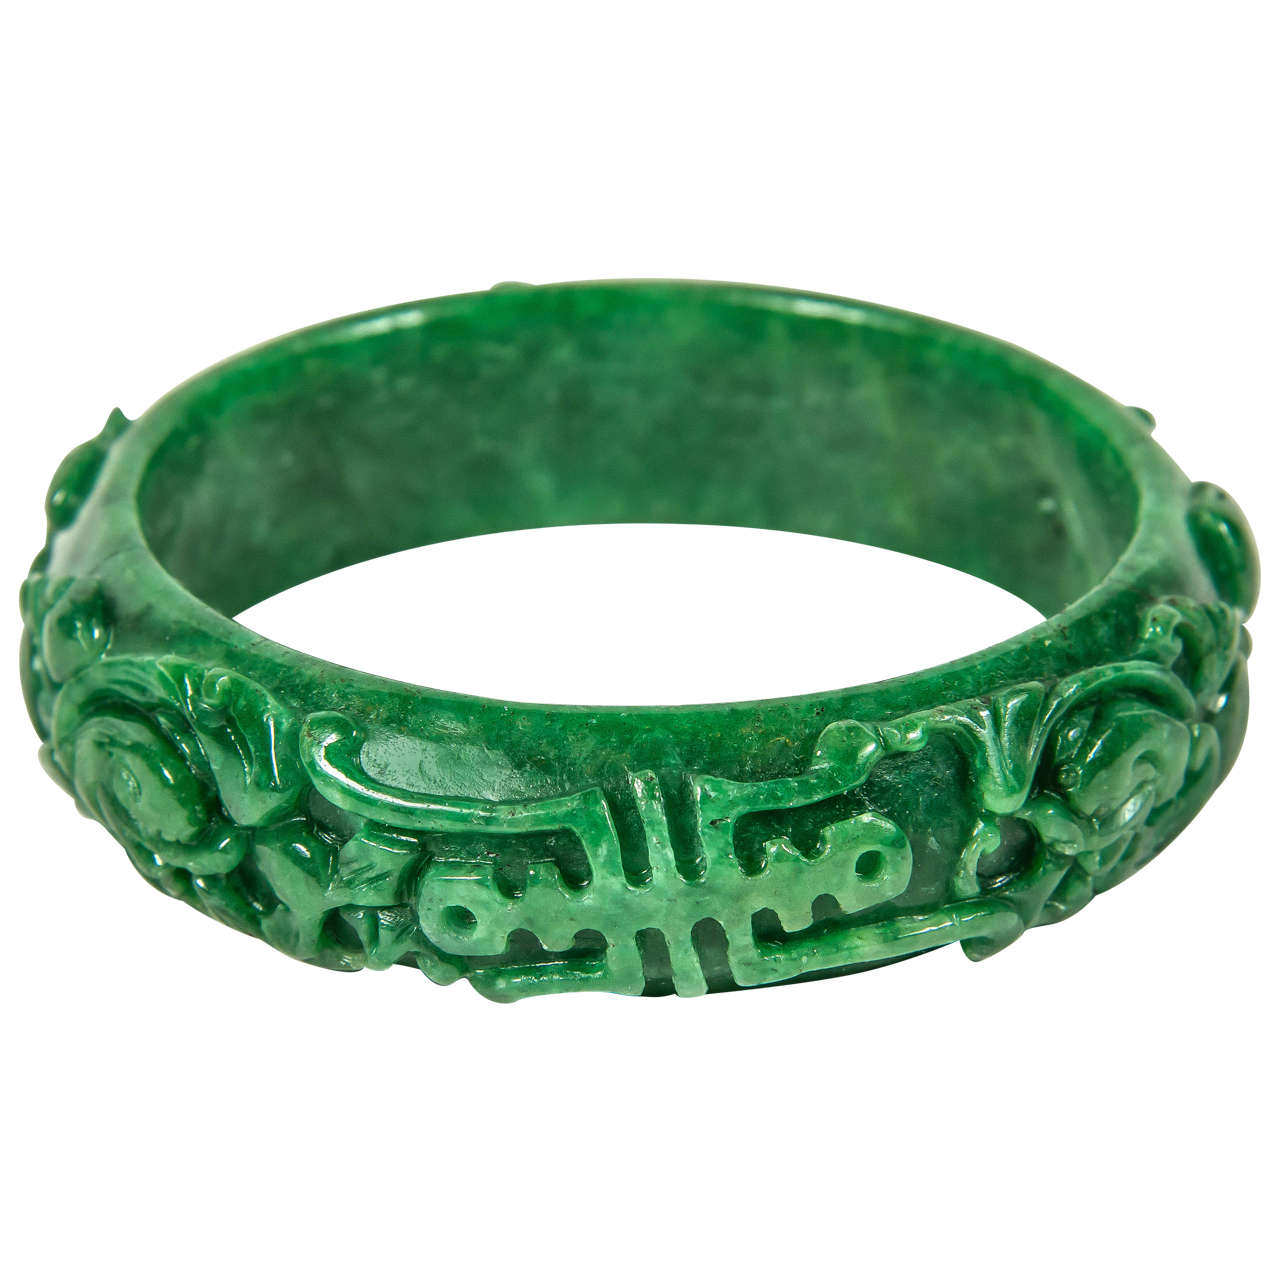 green jaipur rajasthan indiamart in india emerald bangles ruby imitation stone